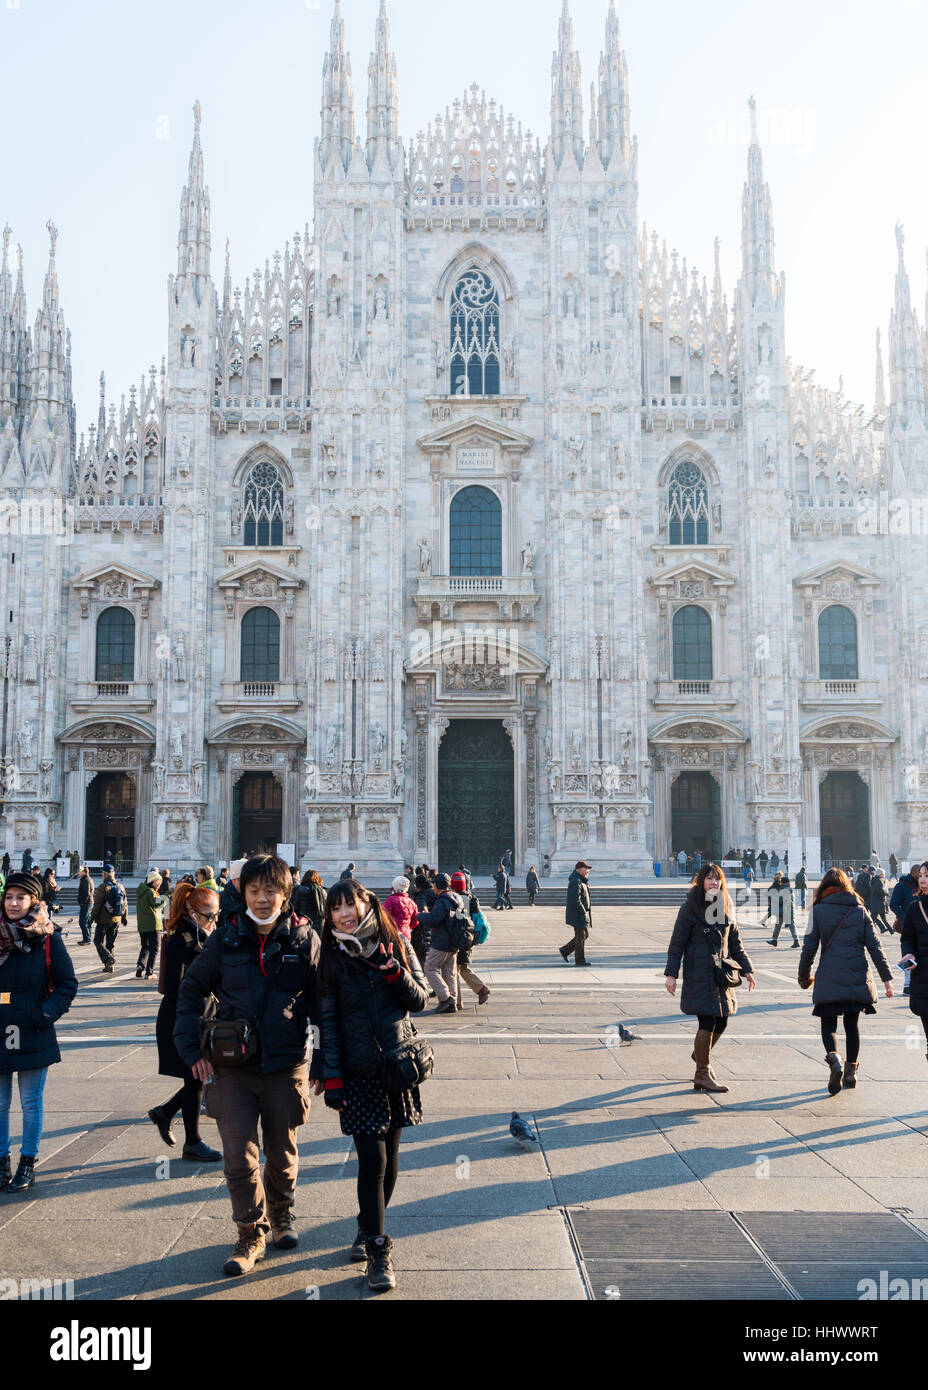 Milan Cathedral / Duomo, Lombardy, Italy, a popular destination for Asian tourists - Stock Image